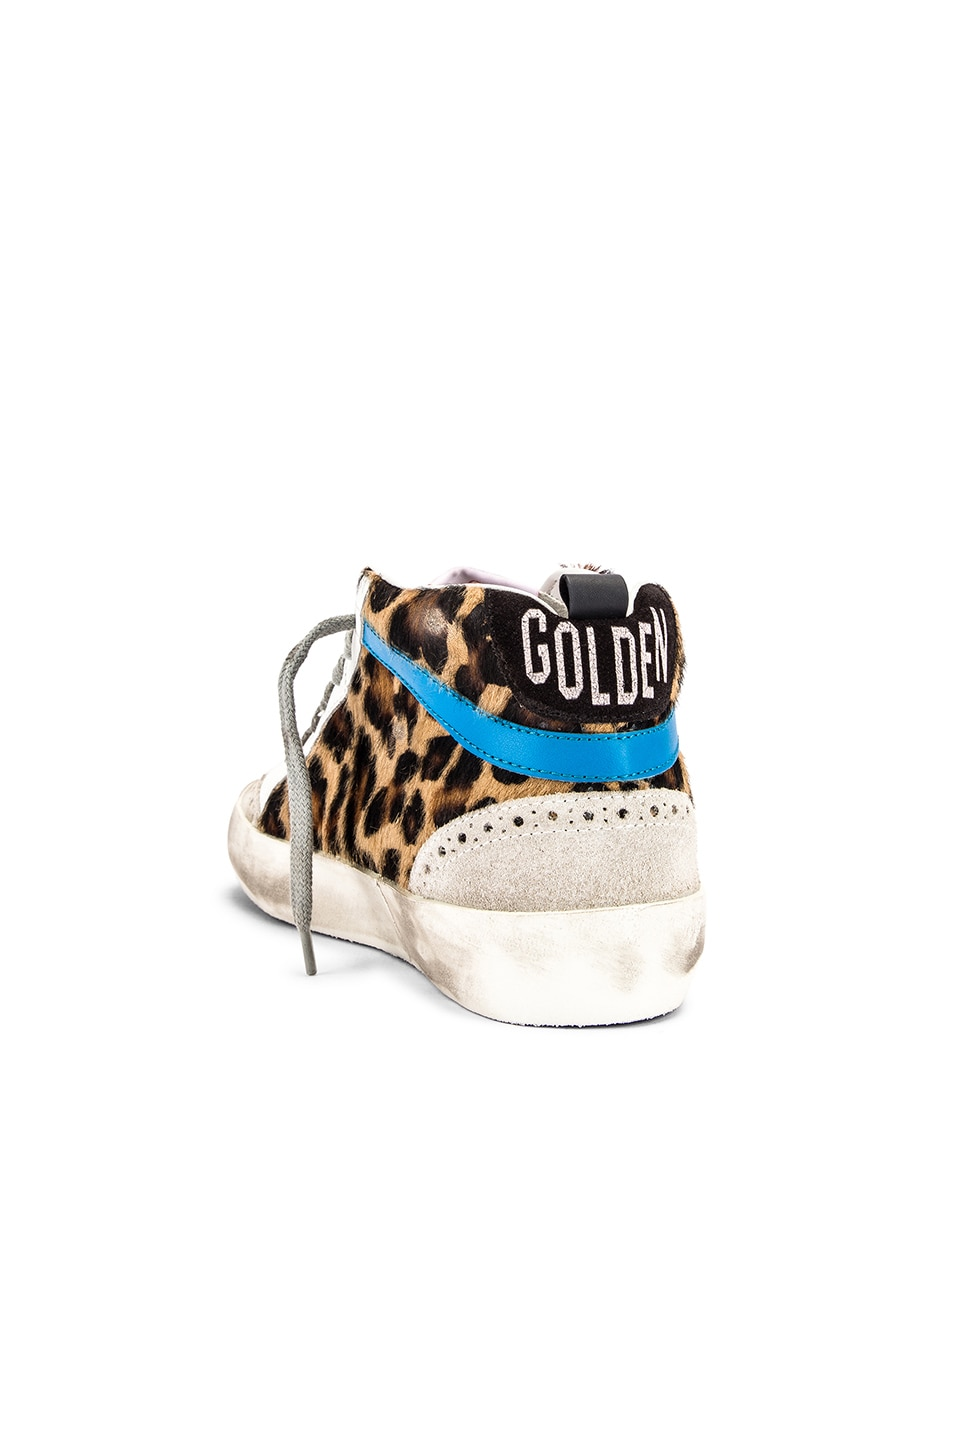 Image 3 of Golden Goose Mid Star Sneaker in Leopard Pony & Black